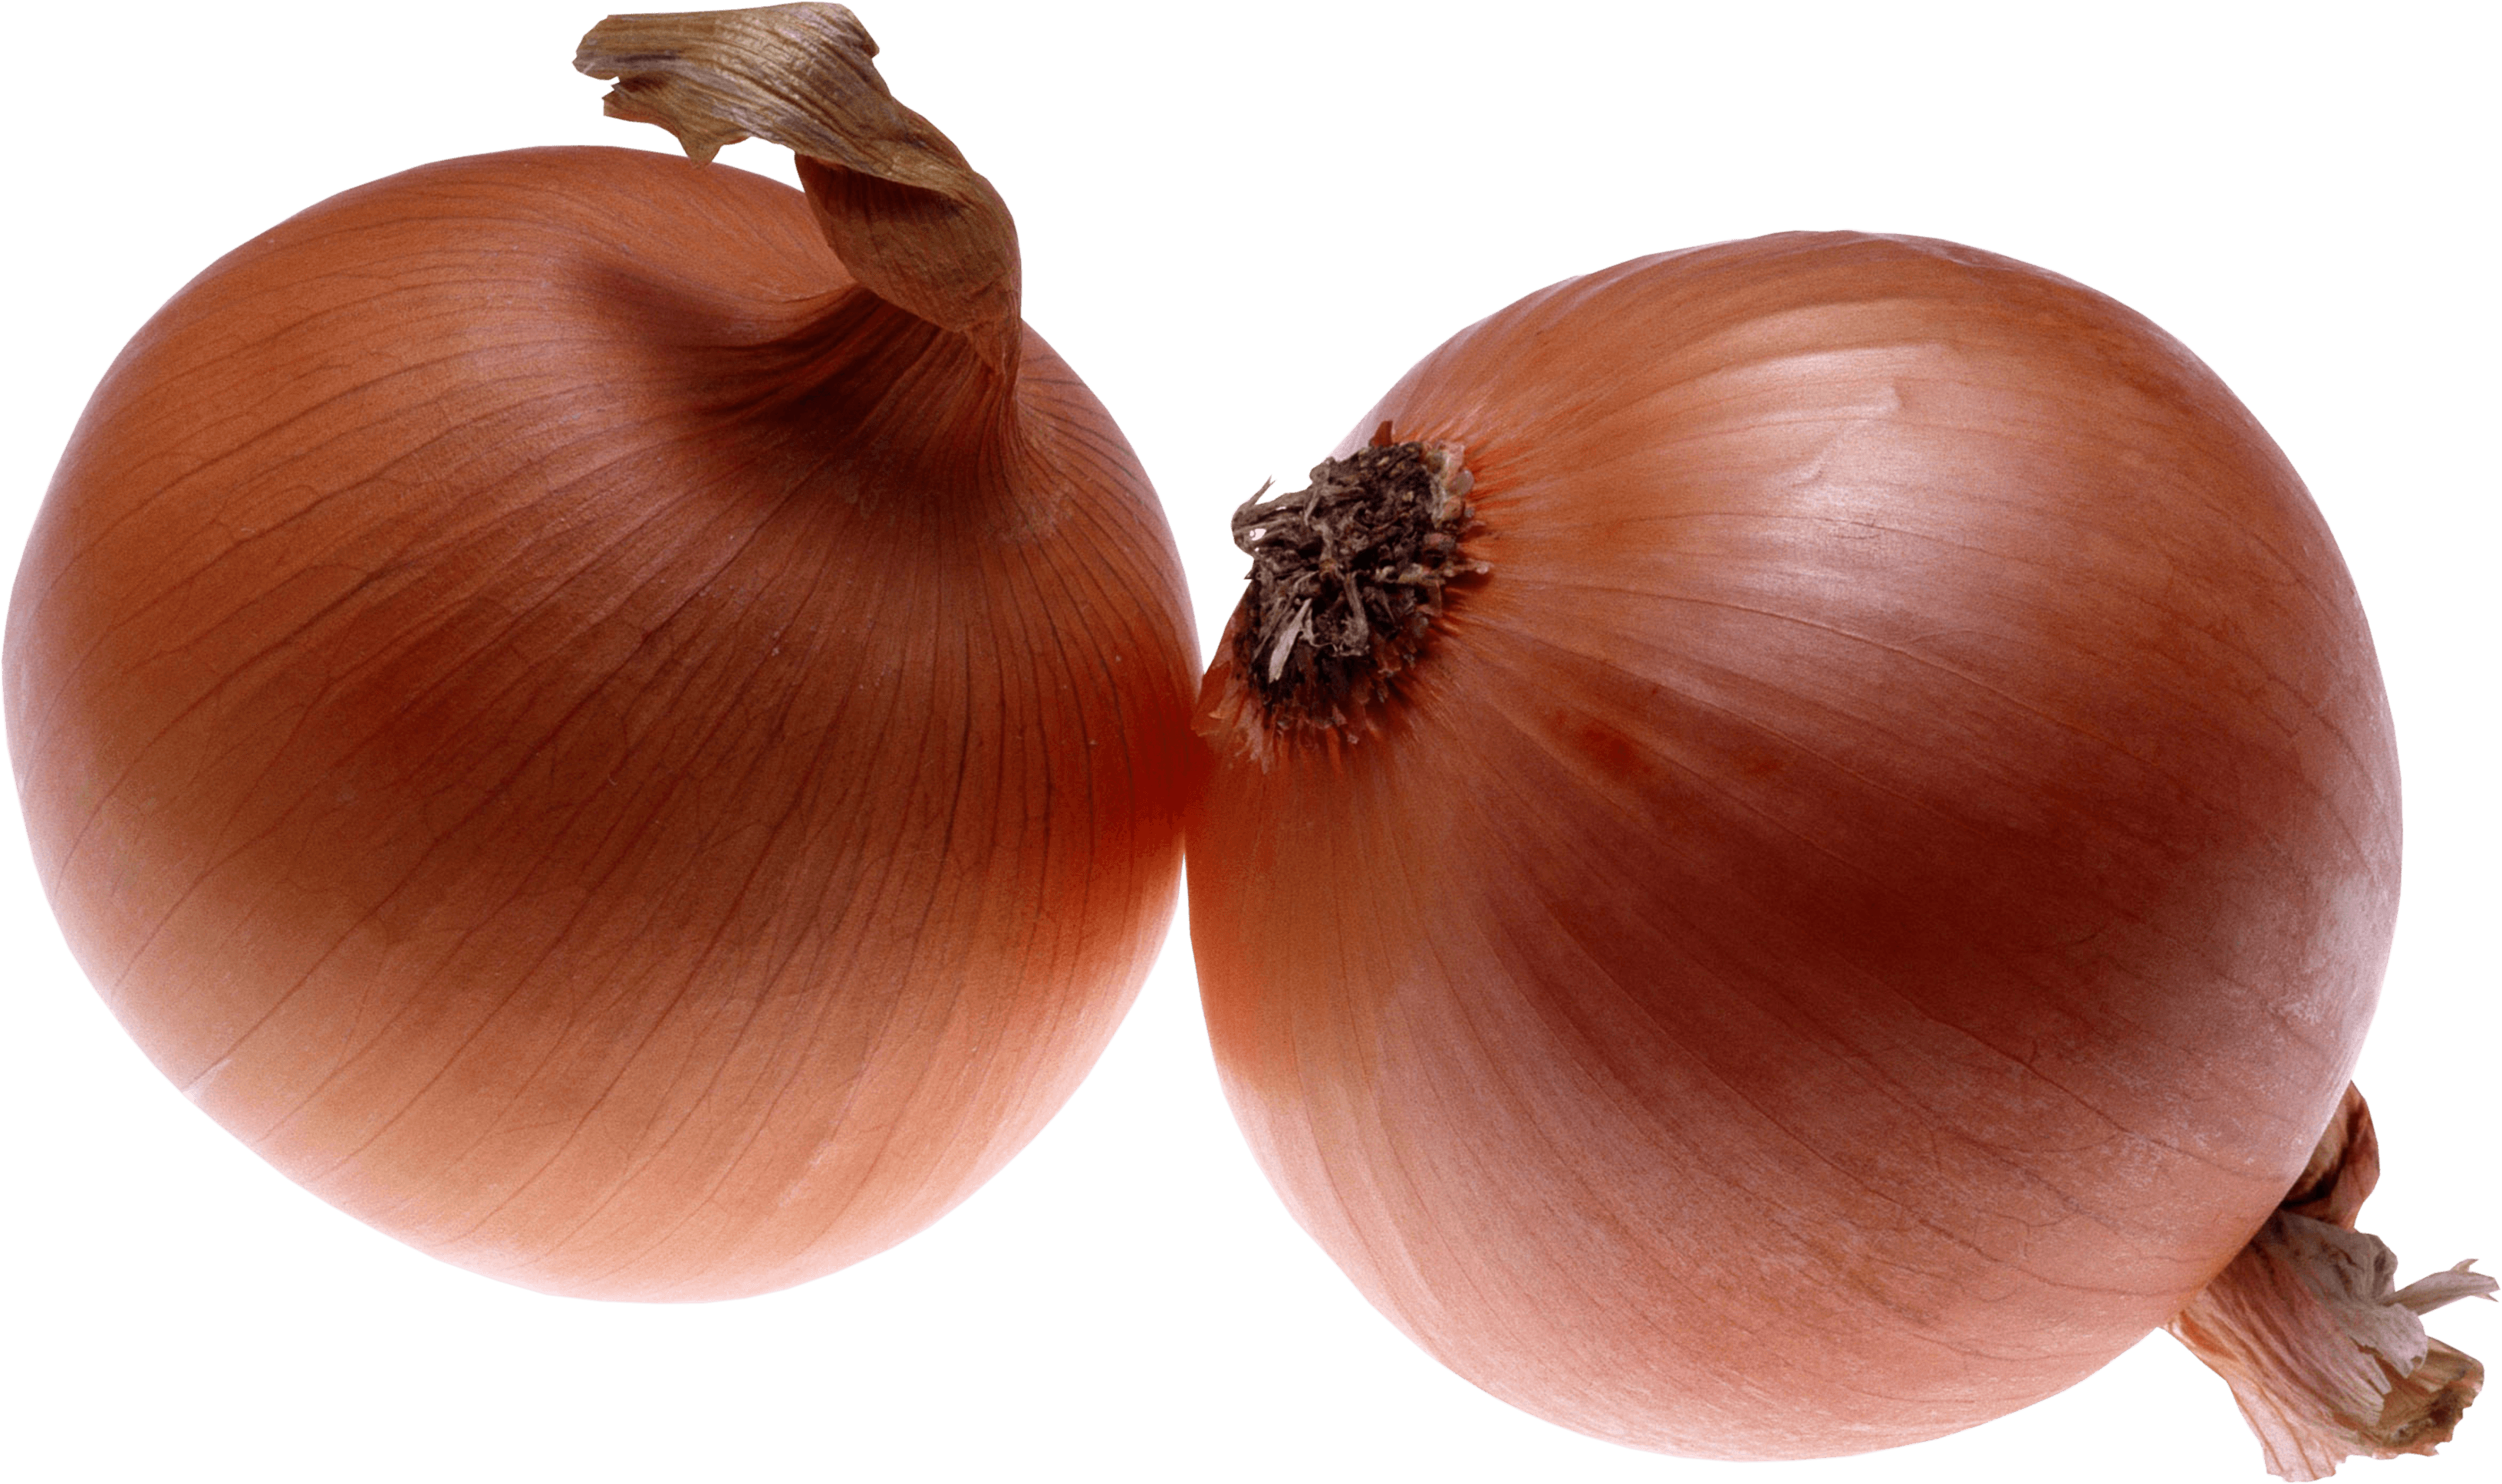 Onion Png Image PNG Image